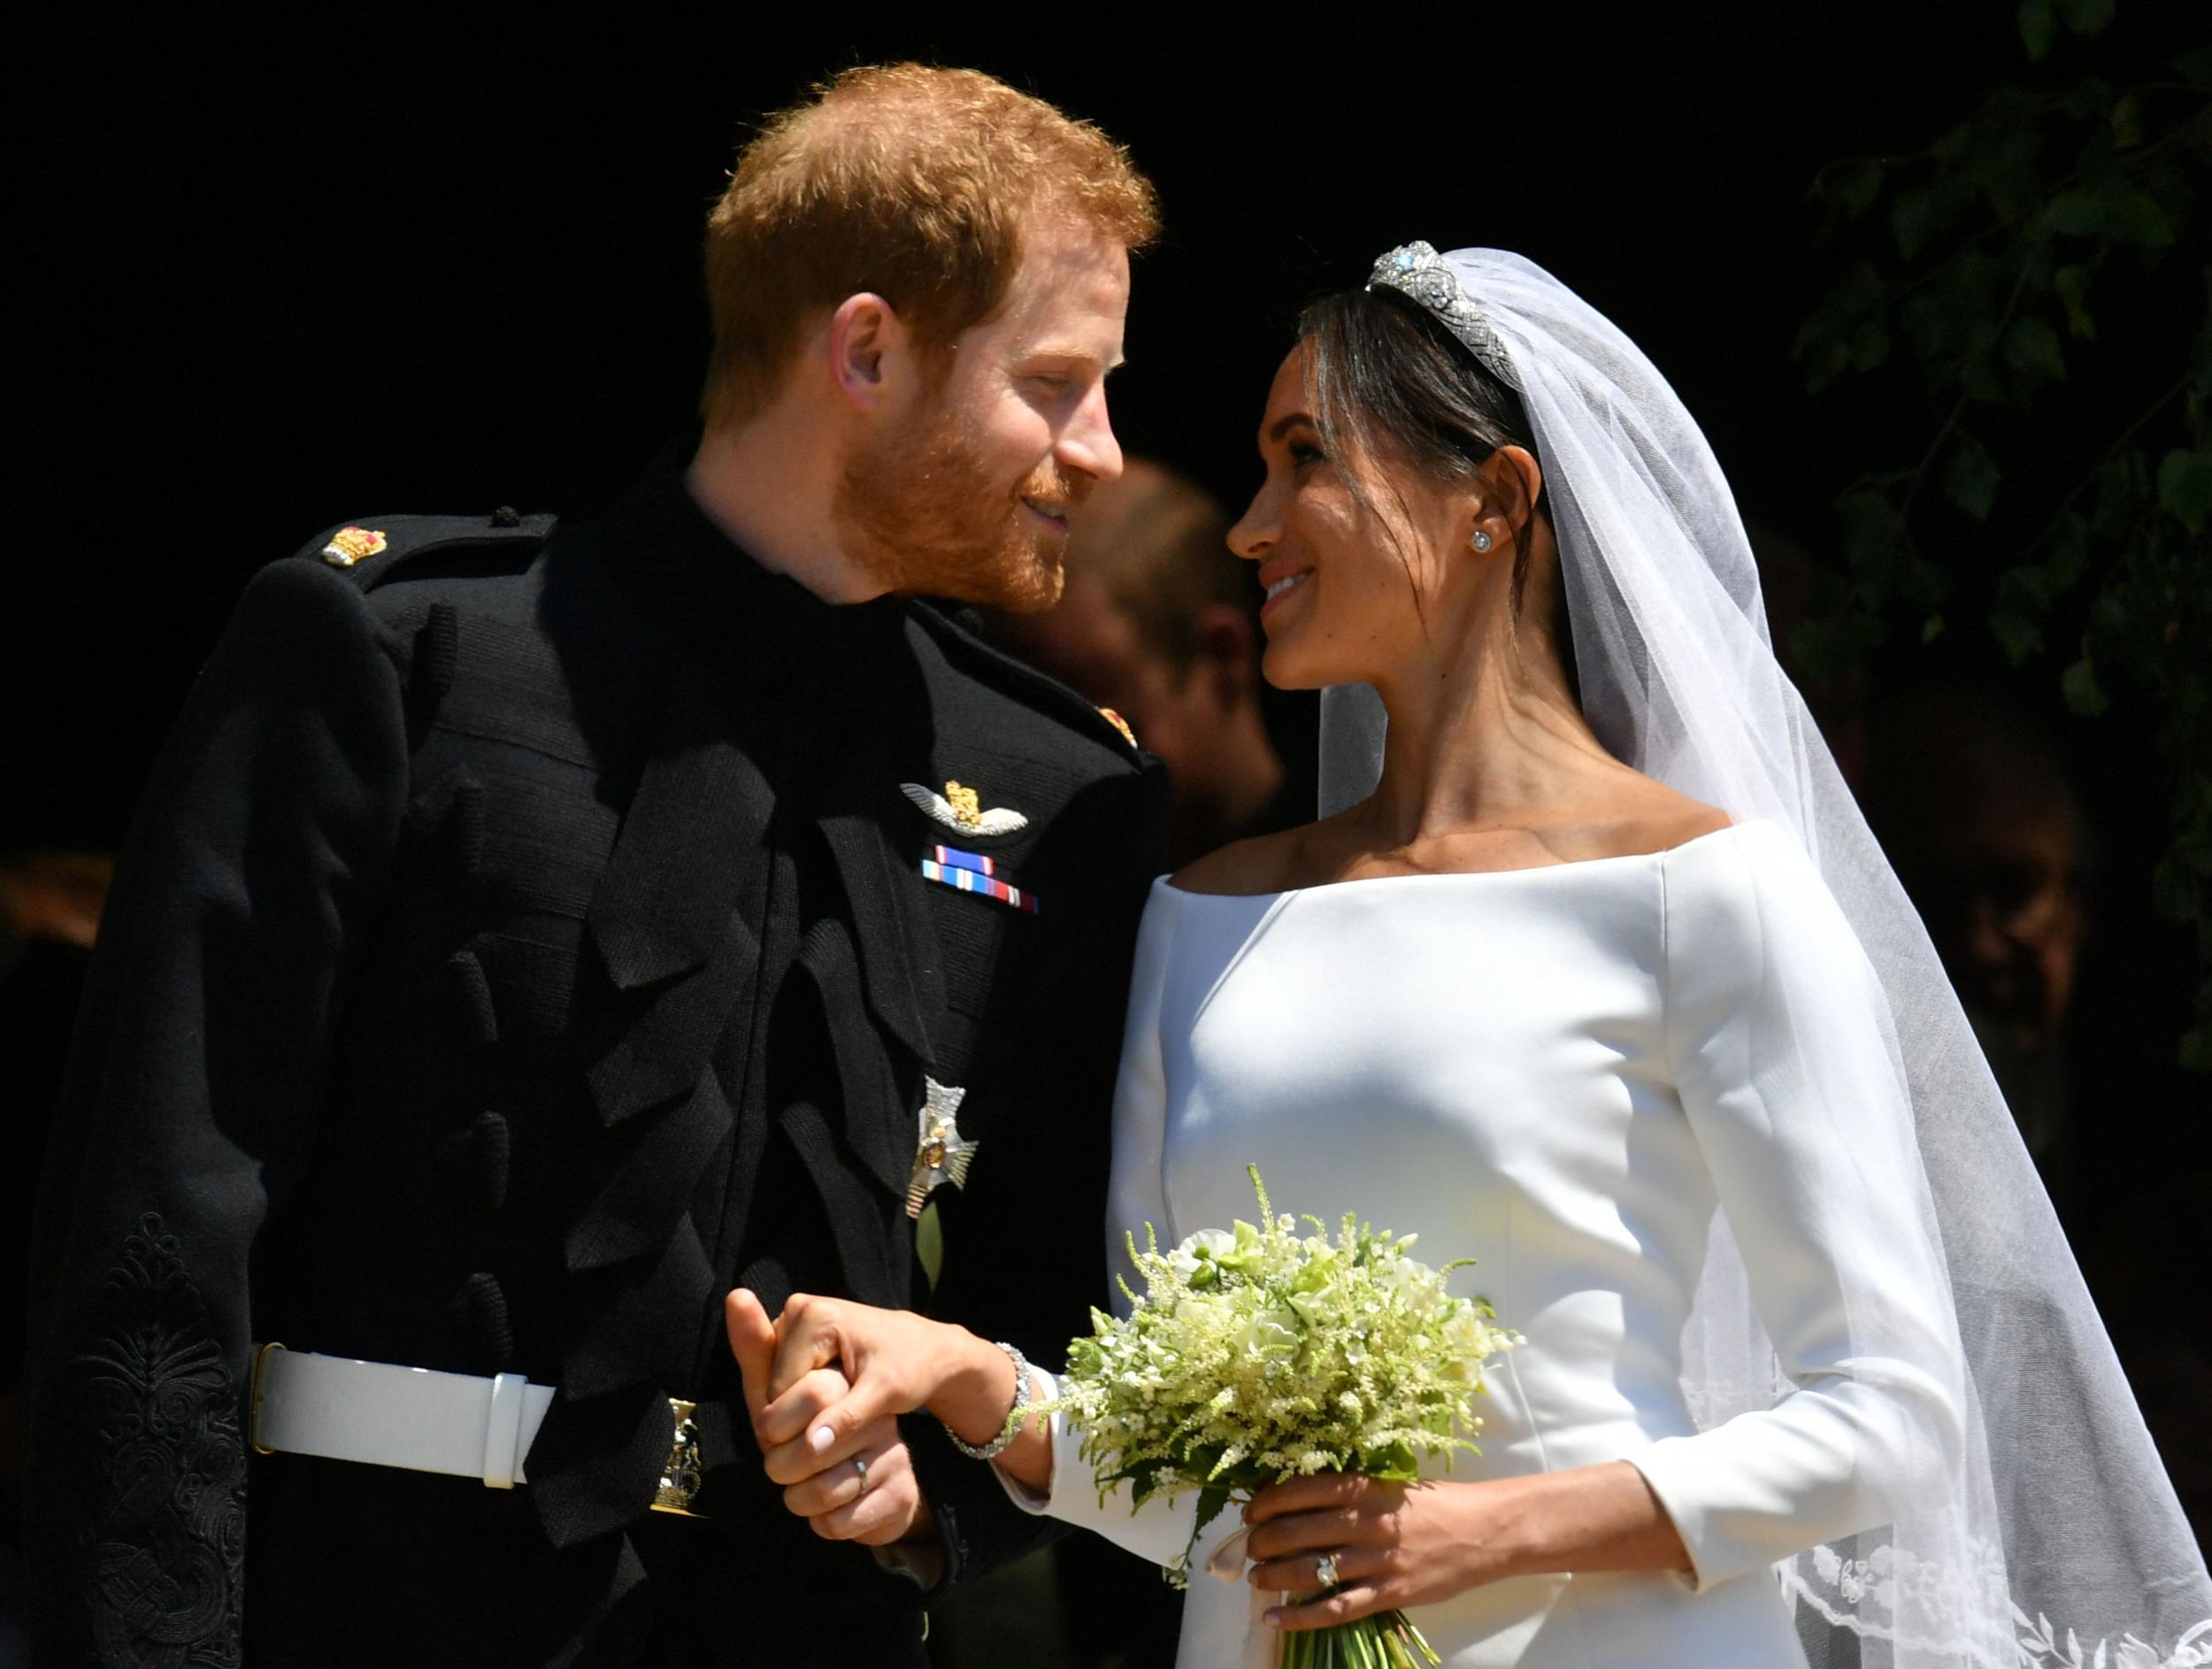 <p>Britain's Prince Harry, Duke of Sussex and his wife Meghan, Duchess of Sussex emerge from the West Door of St George's Chapel, Windsor Castle, in Windsor, on May 19, 2018 after their wedding ceremony.</p>  <p>(Photo by Ben Birchall / POOL / AFP)</p>